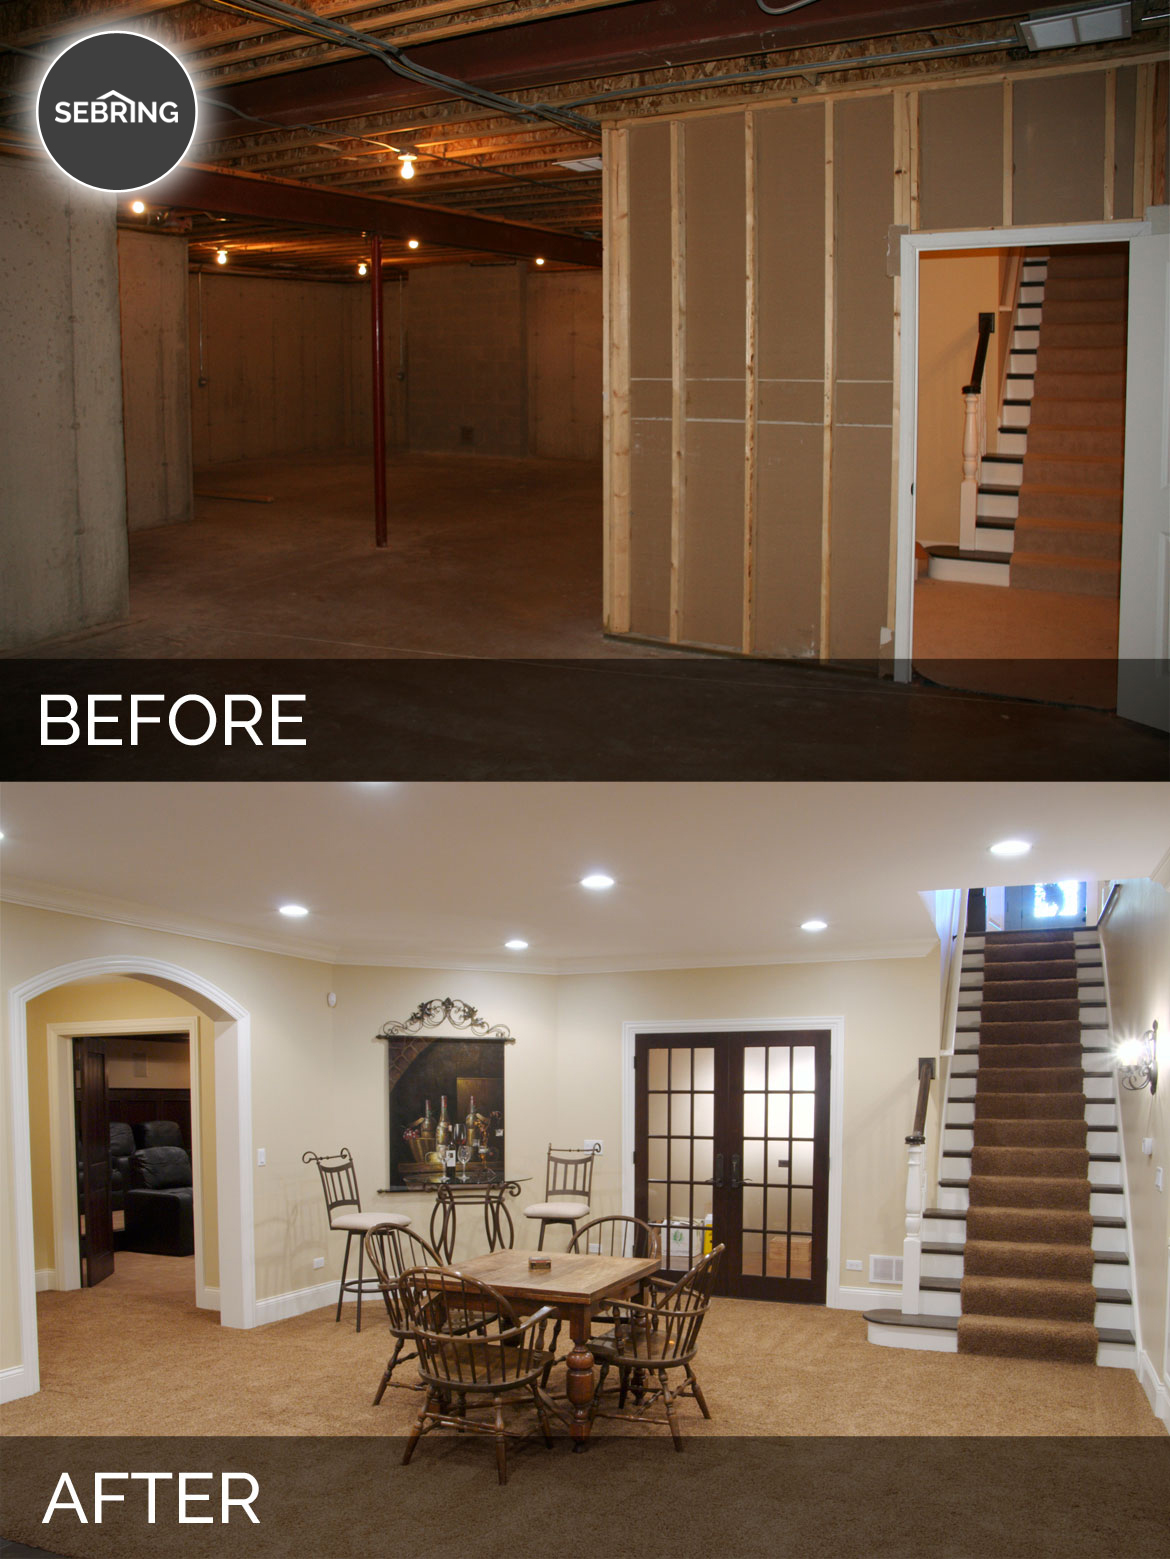 Before And After Diy Kitchen Renovation: Steve & Elaine's Basement Before & After Pictures